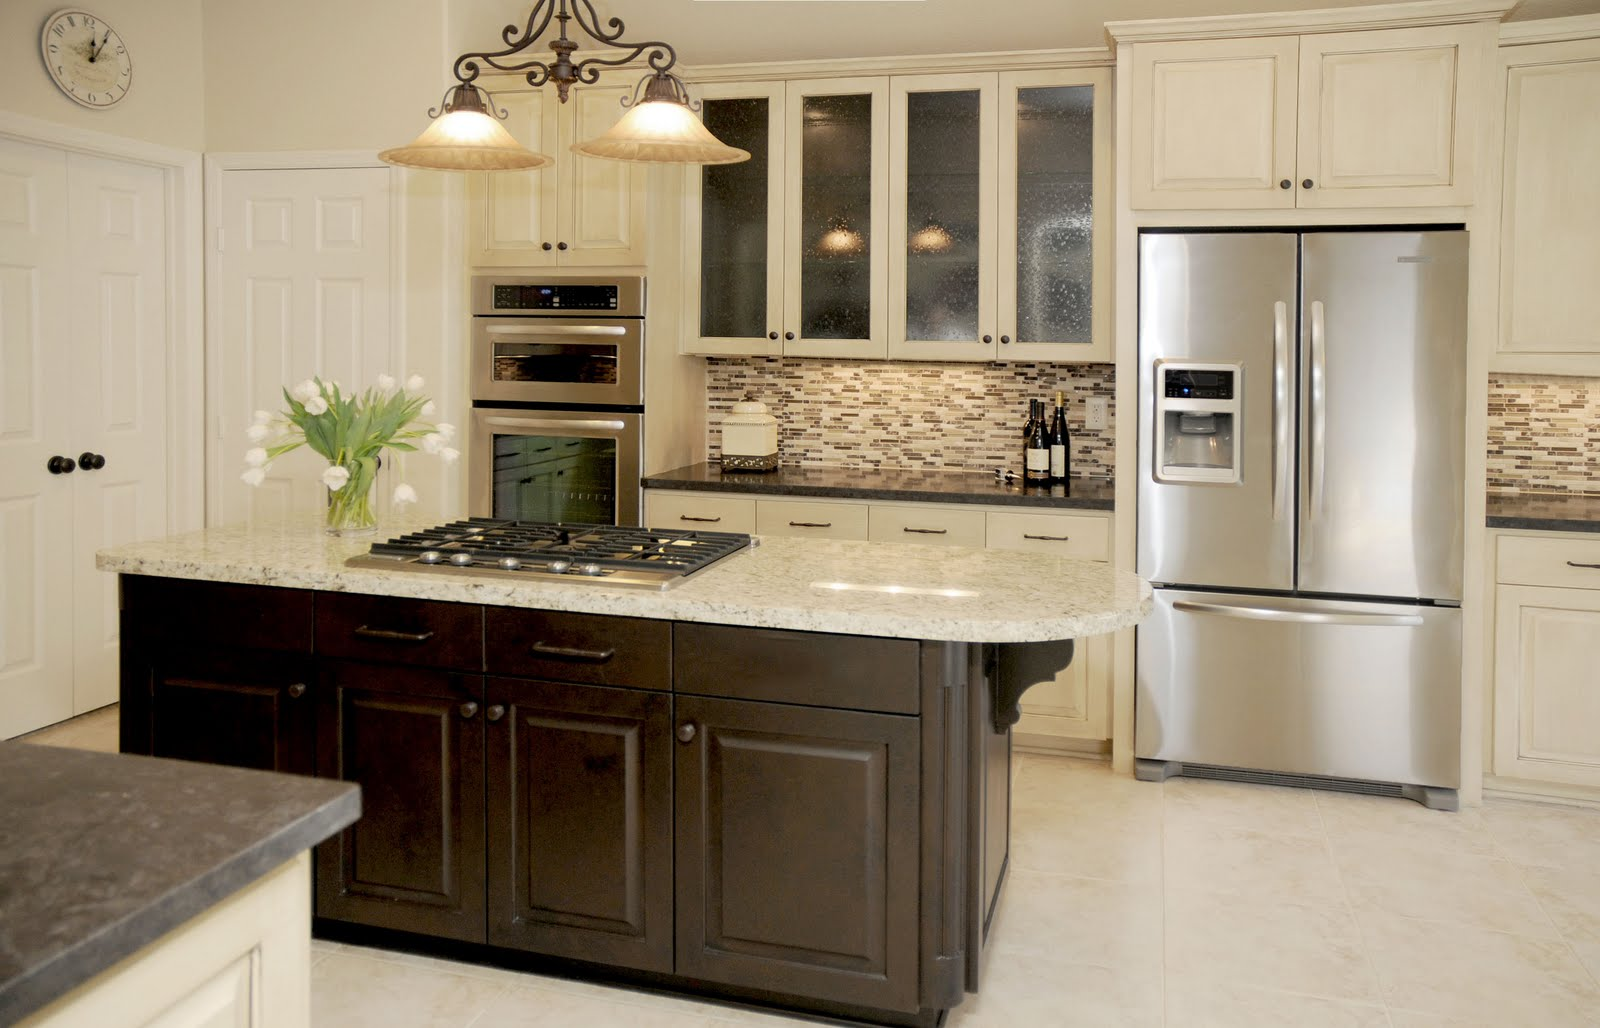 Galley kitchen remodels before and after kitchen design for I kitchens and renovations